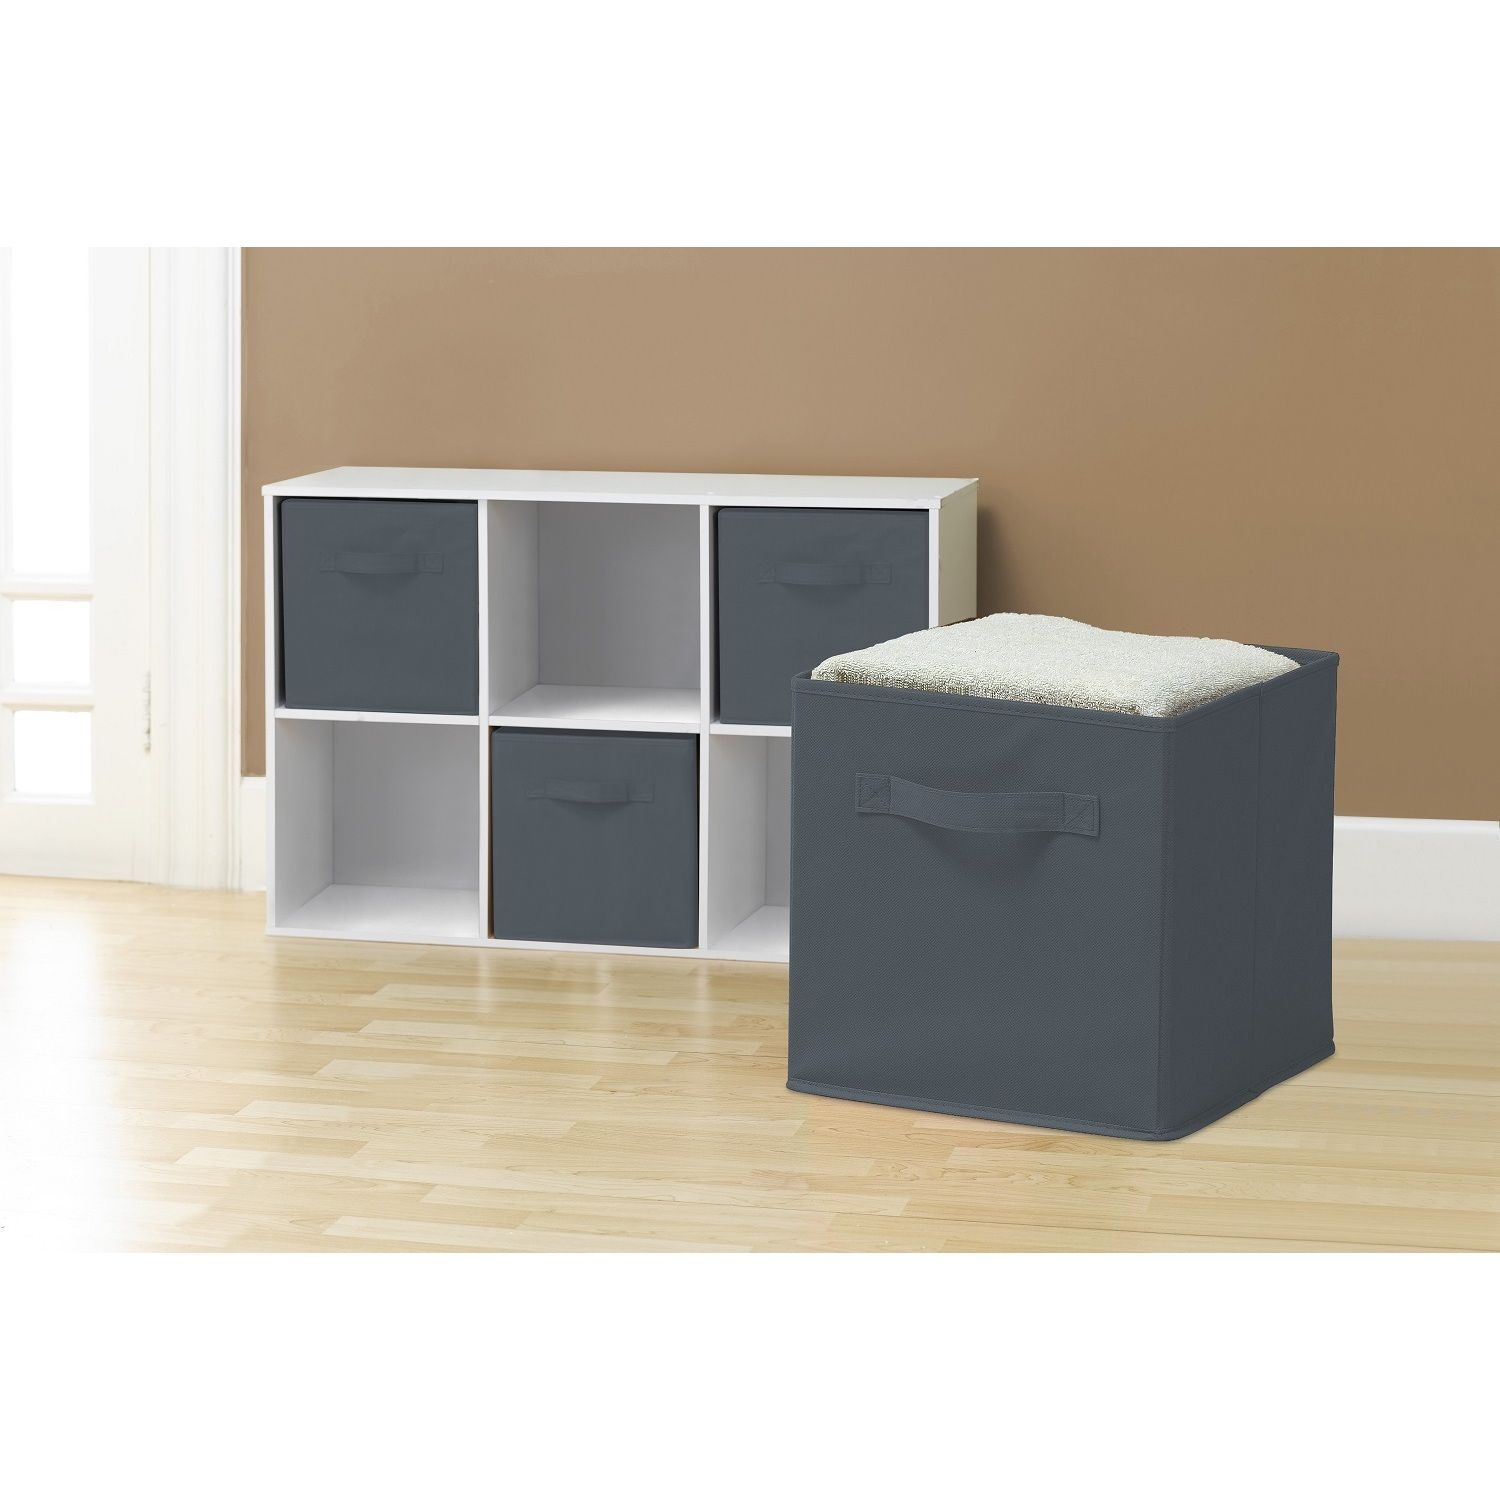 Perfect For Organizing And Cutting Down On Clutter These Collapsible Storage Cubes Add Fun Functionality To Your Cube Organizer Fabric Drawers